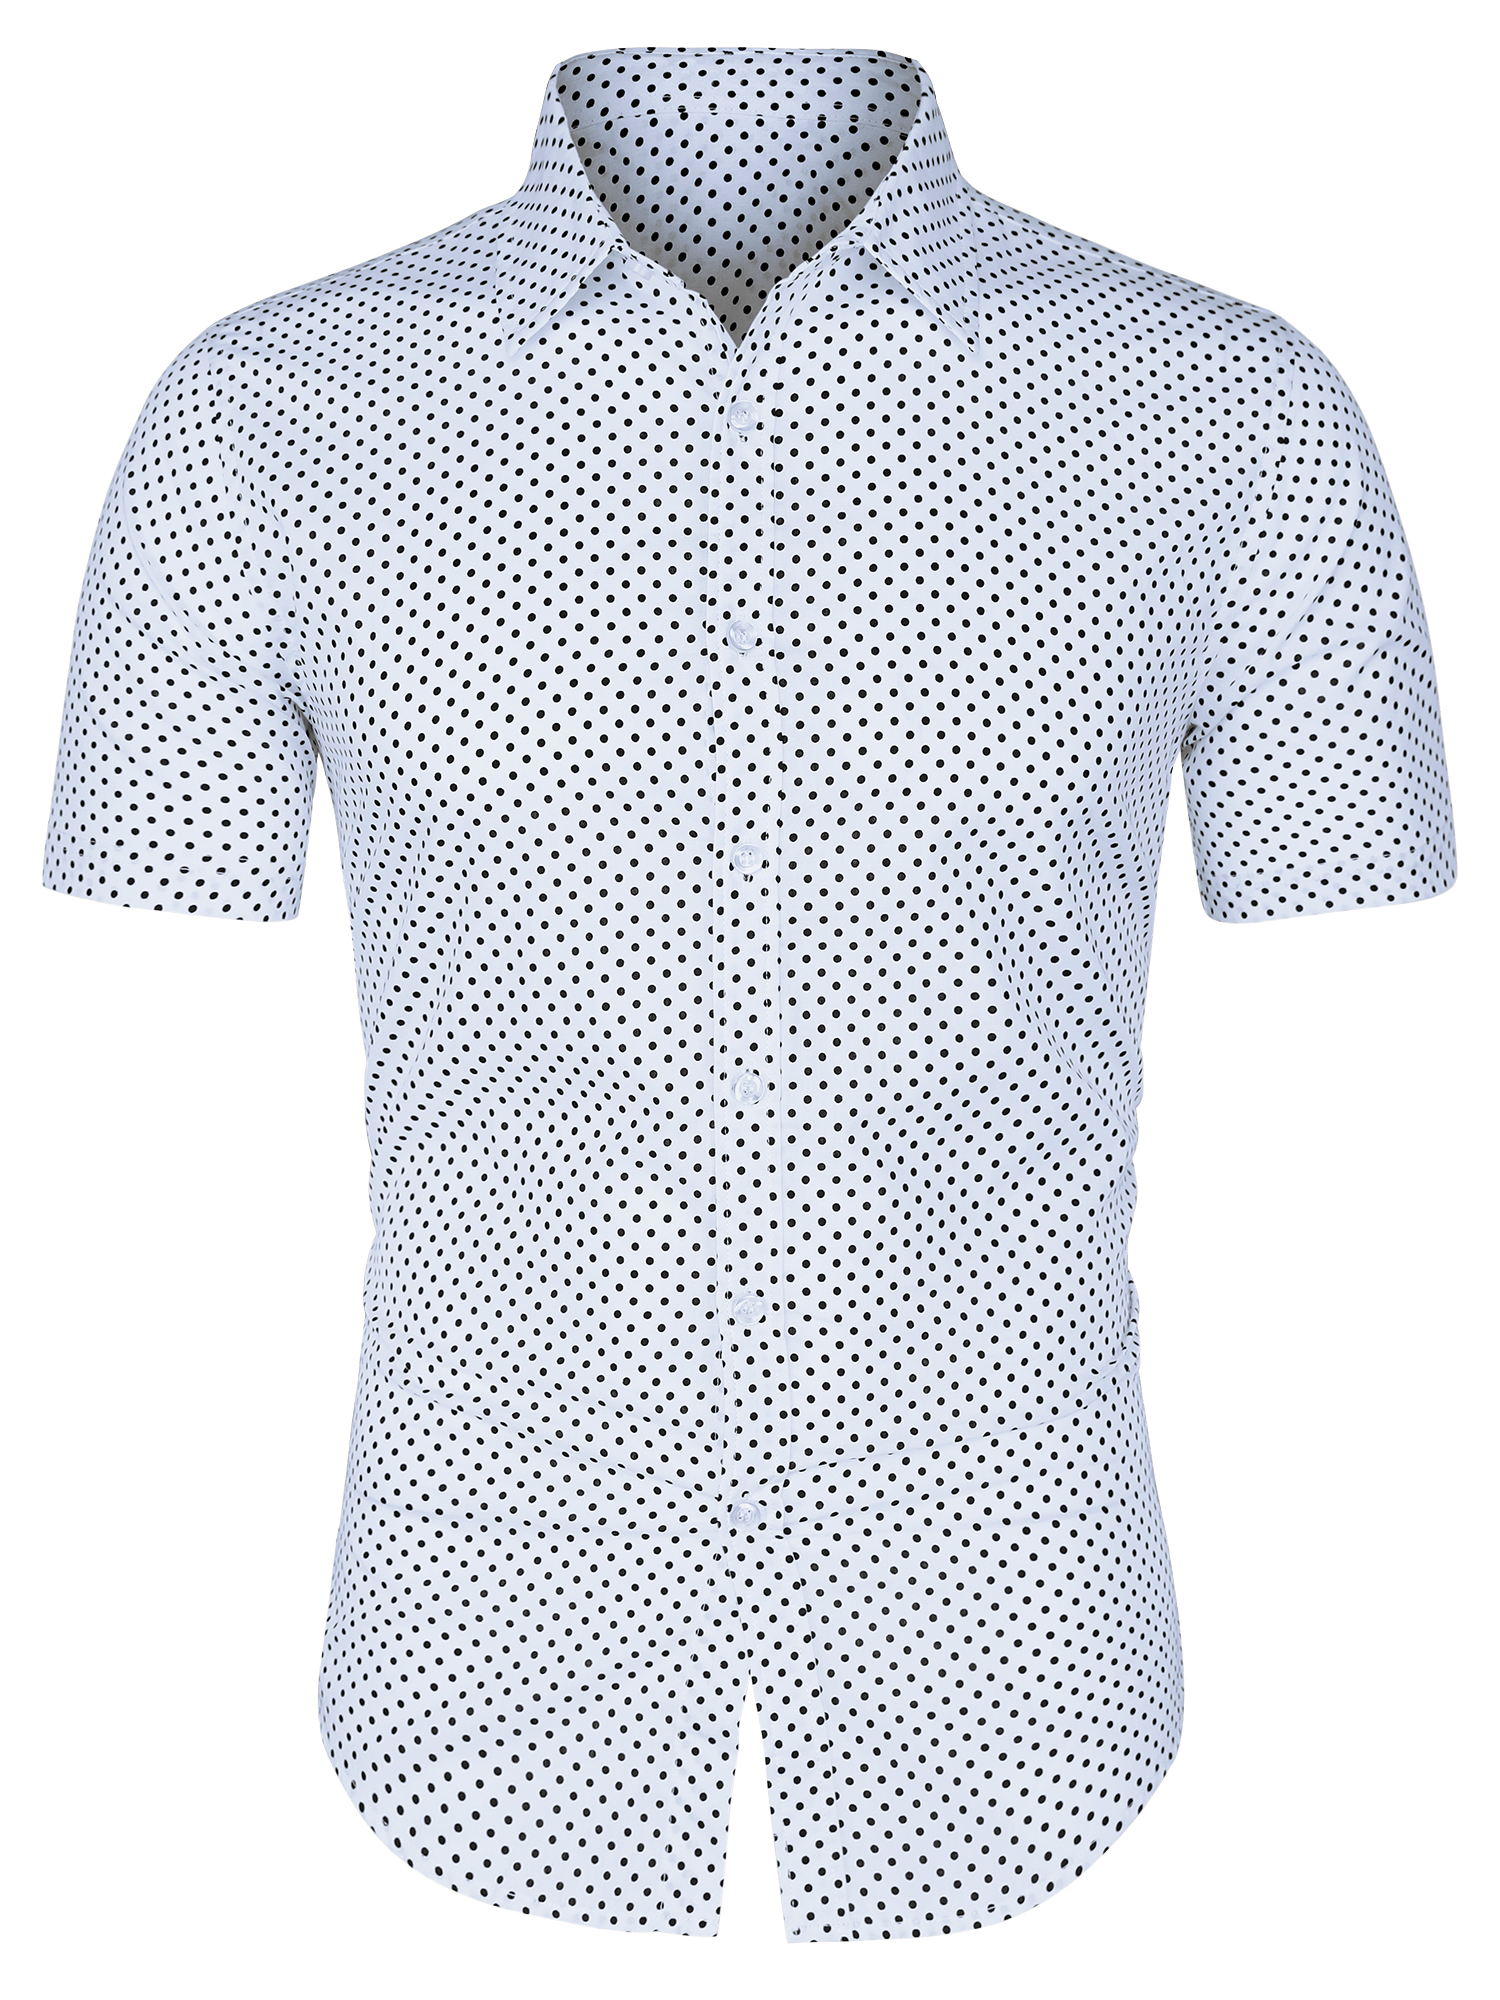 Mens Short Sleeves Button Up Cotton Polka Dots Shirt White M